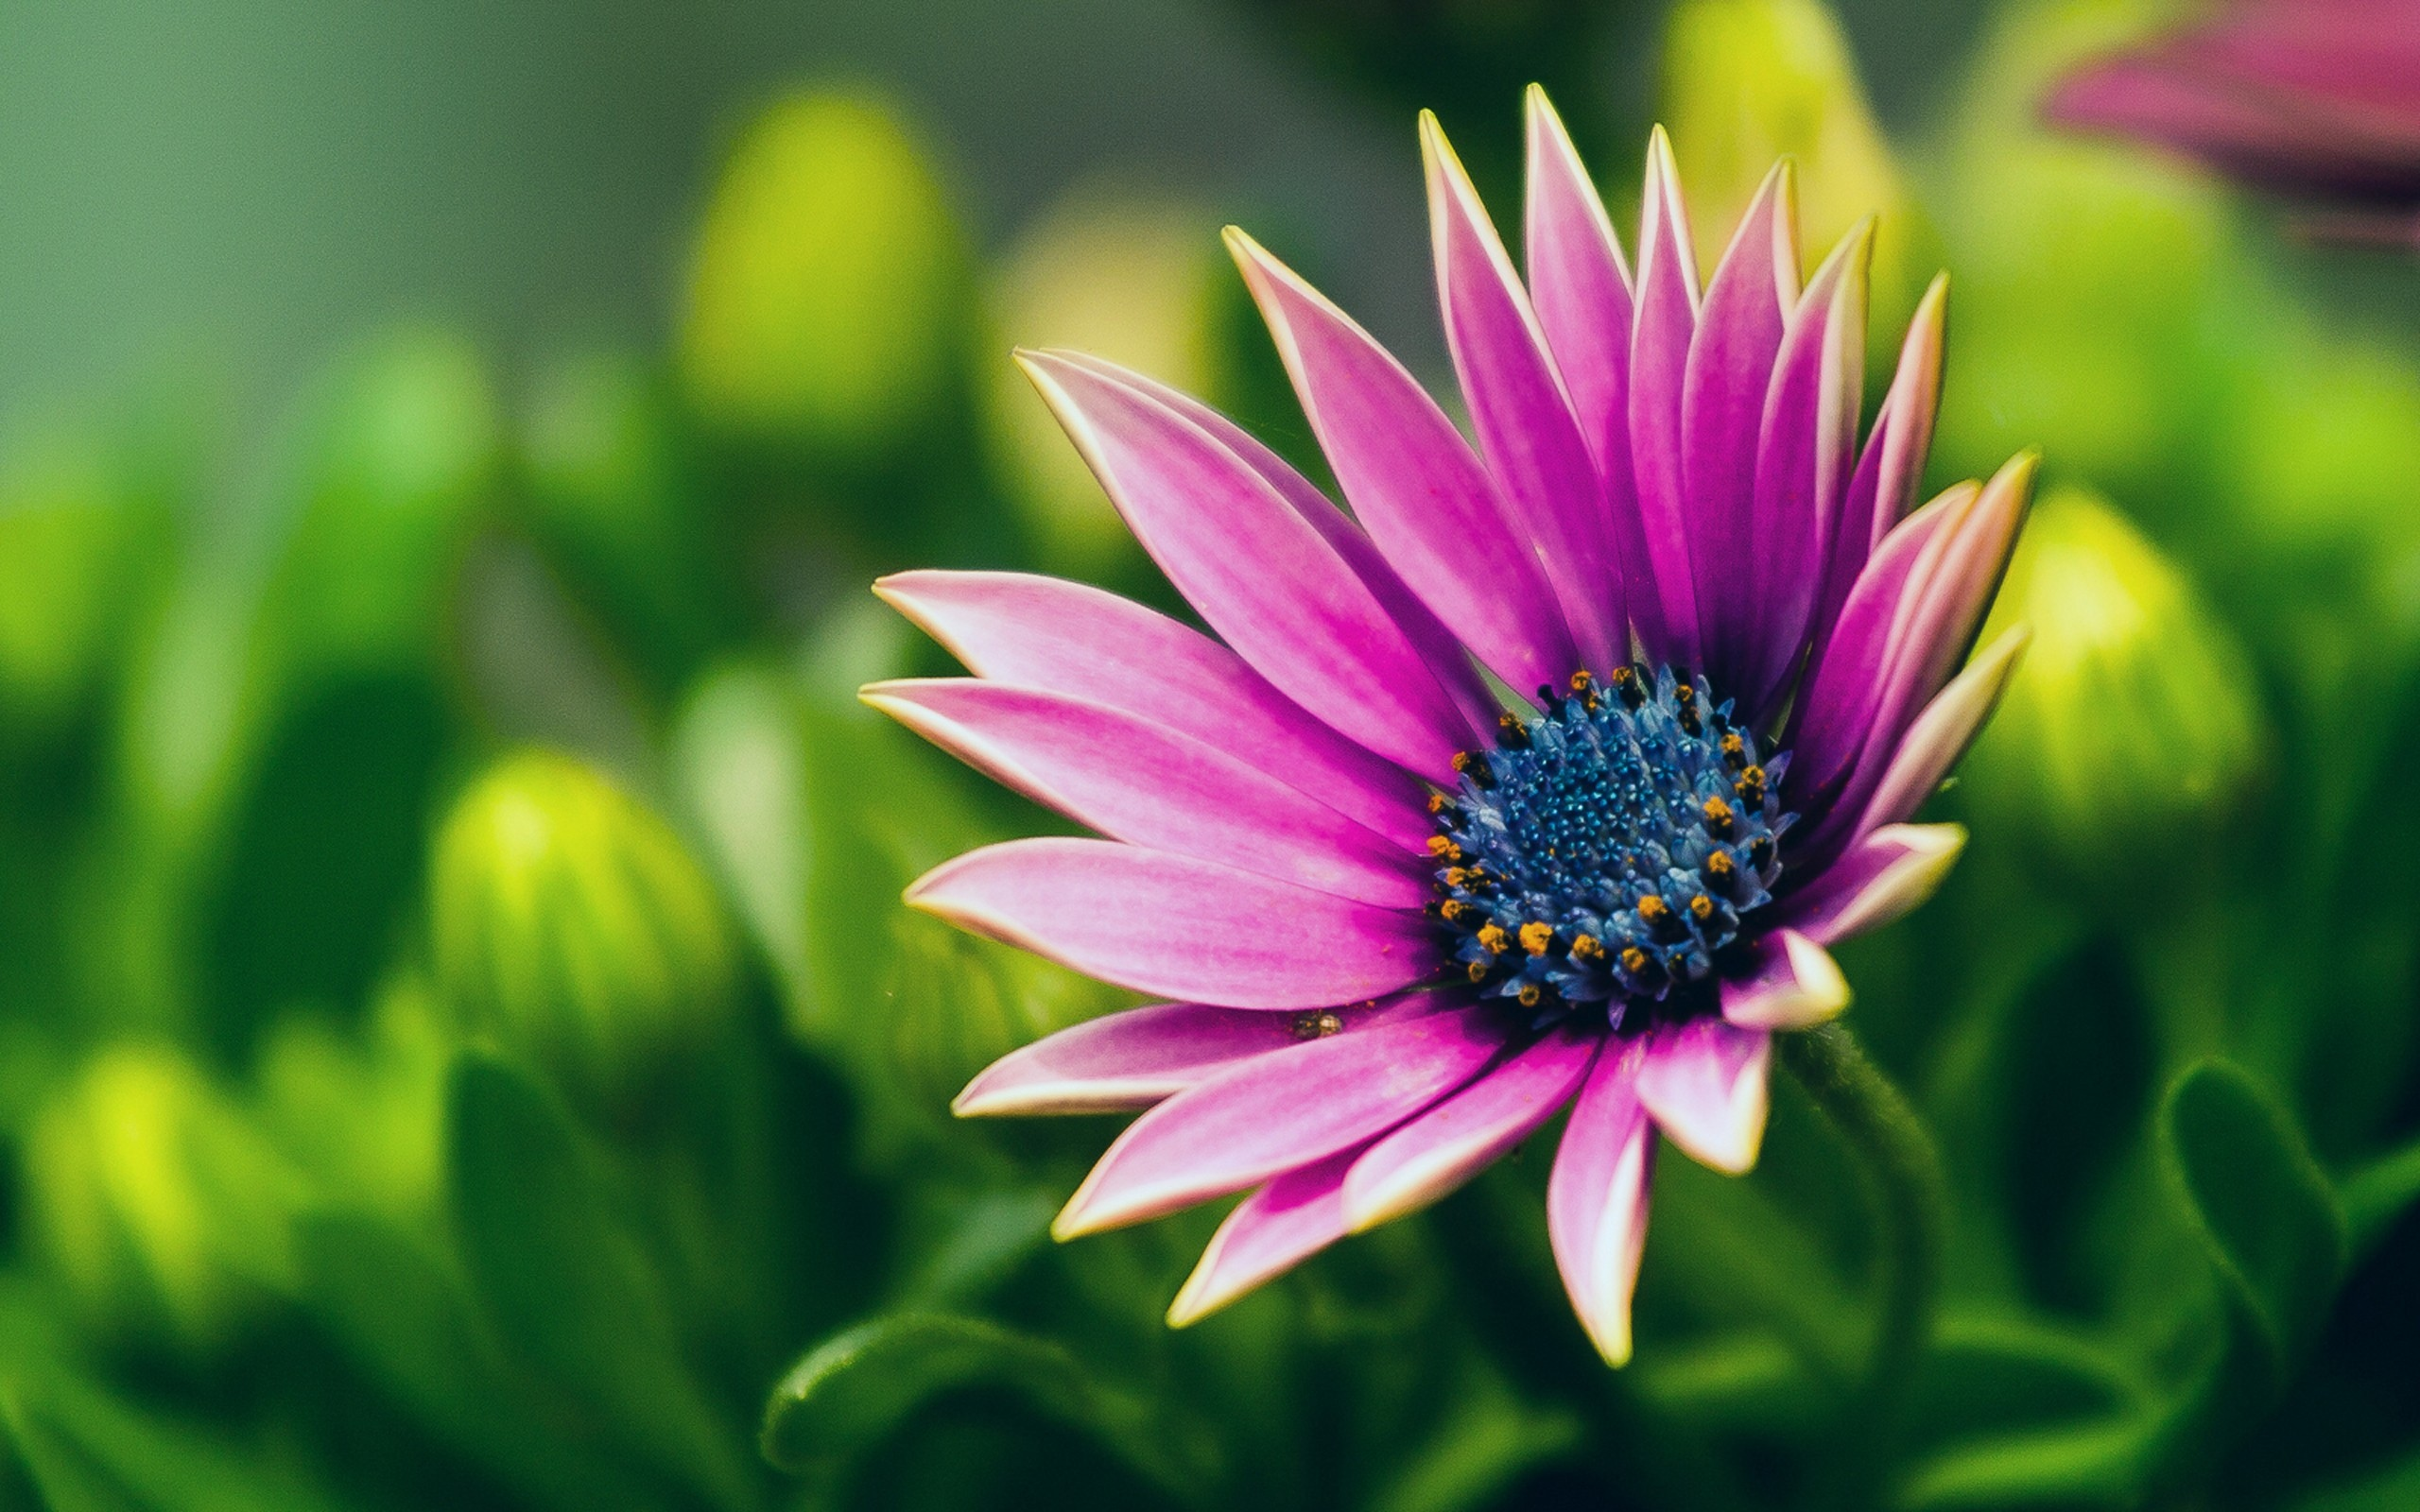 Flower Full HD Wallpaper And Background Image